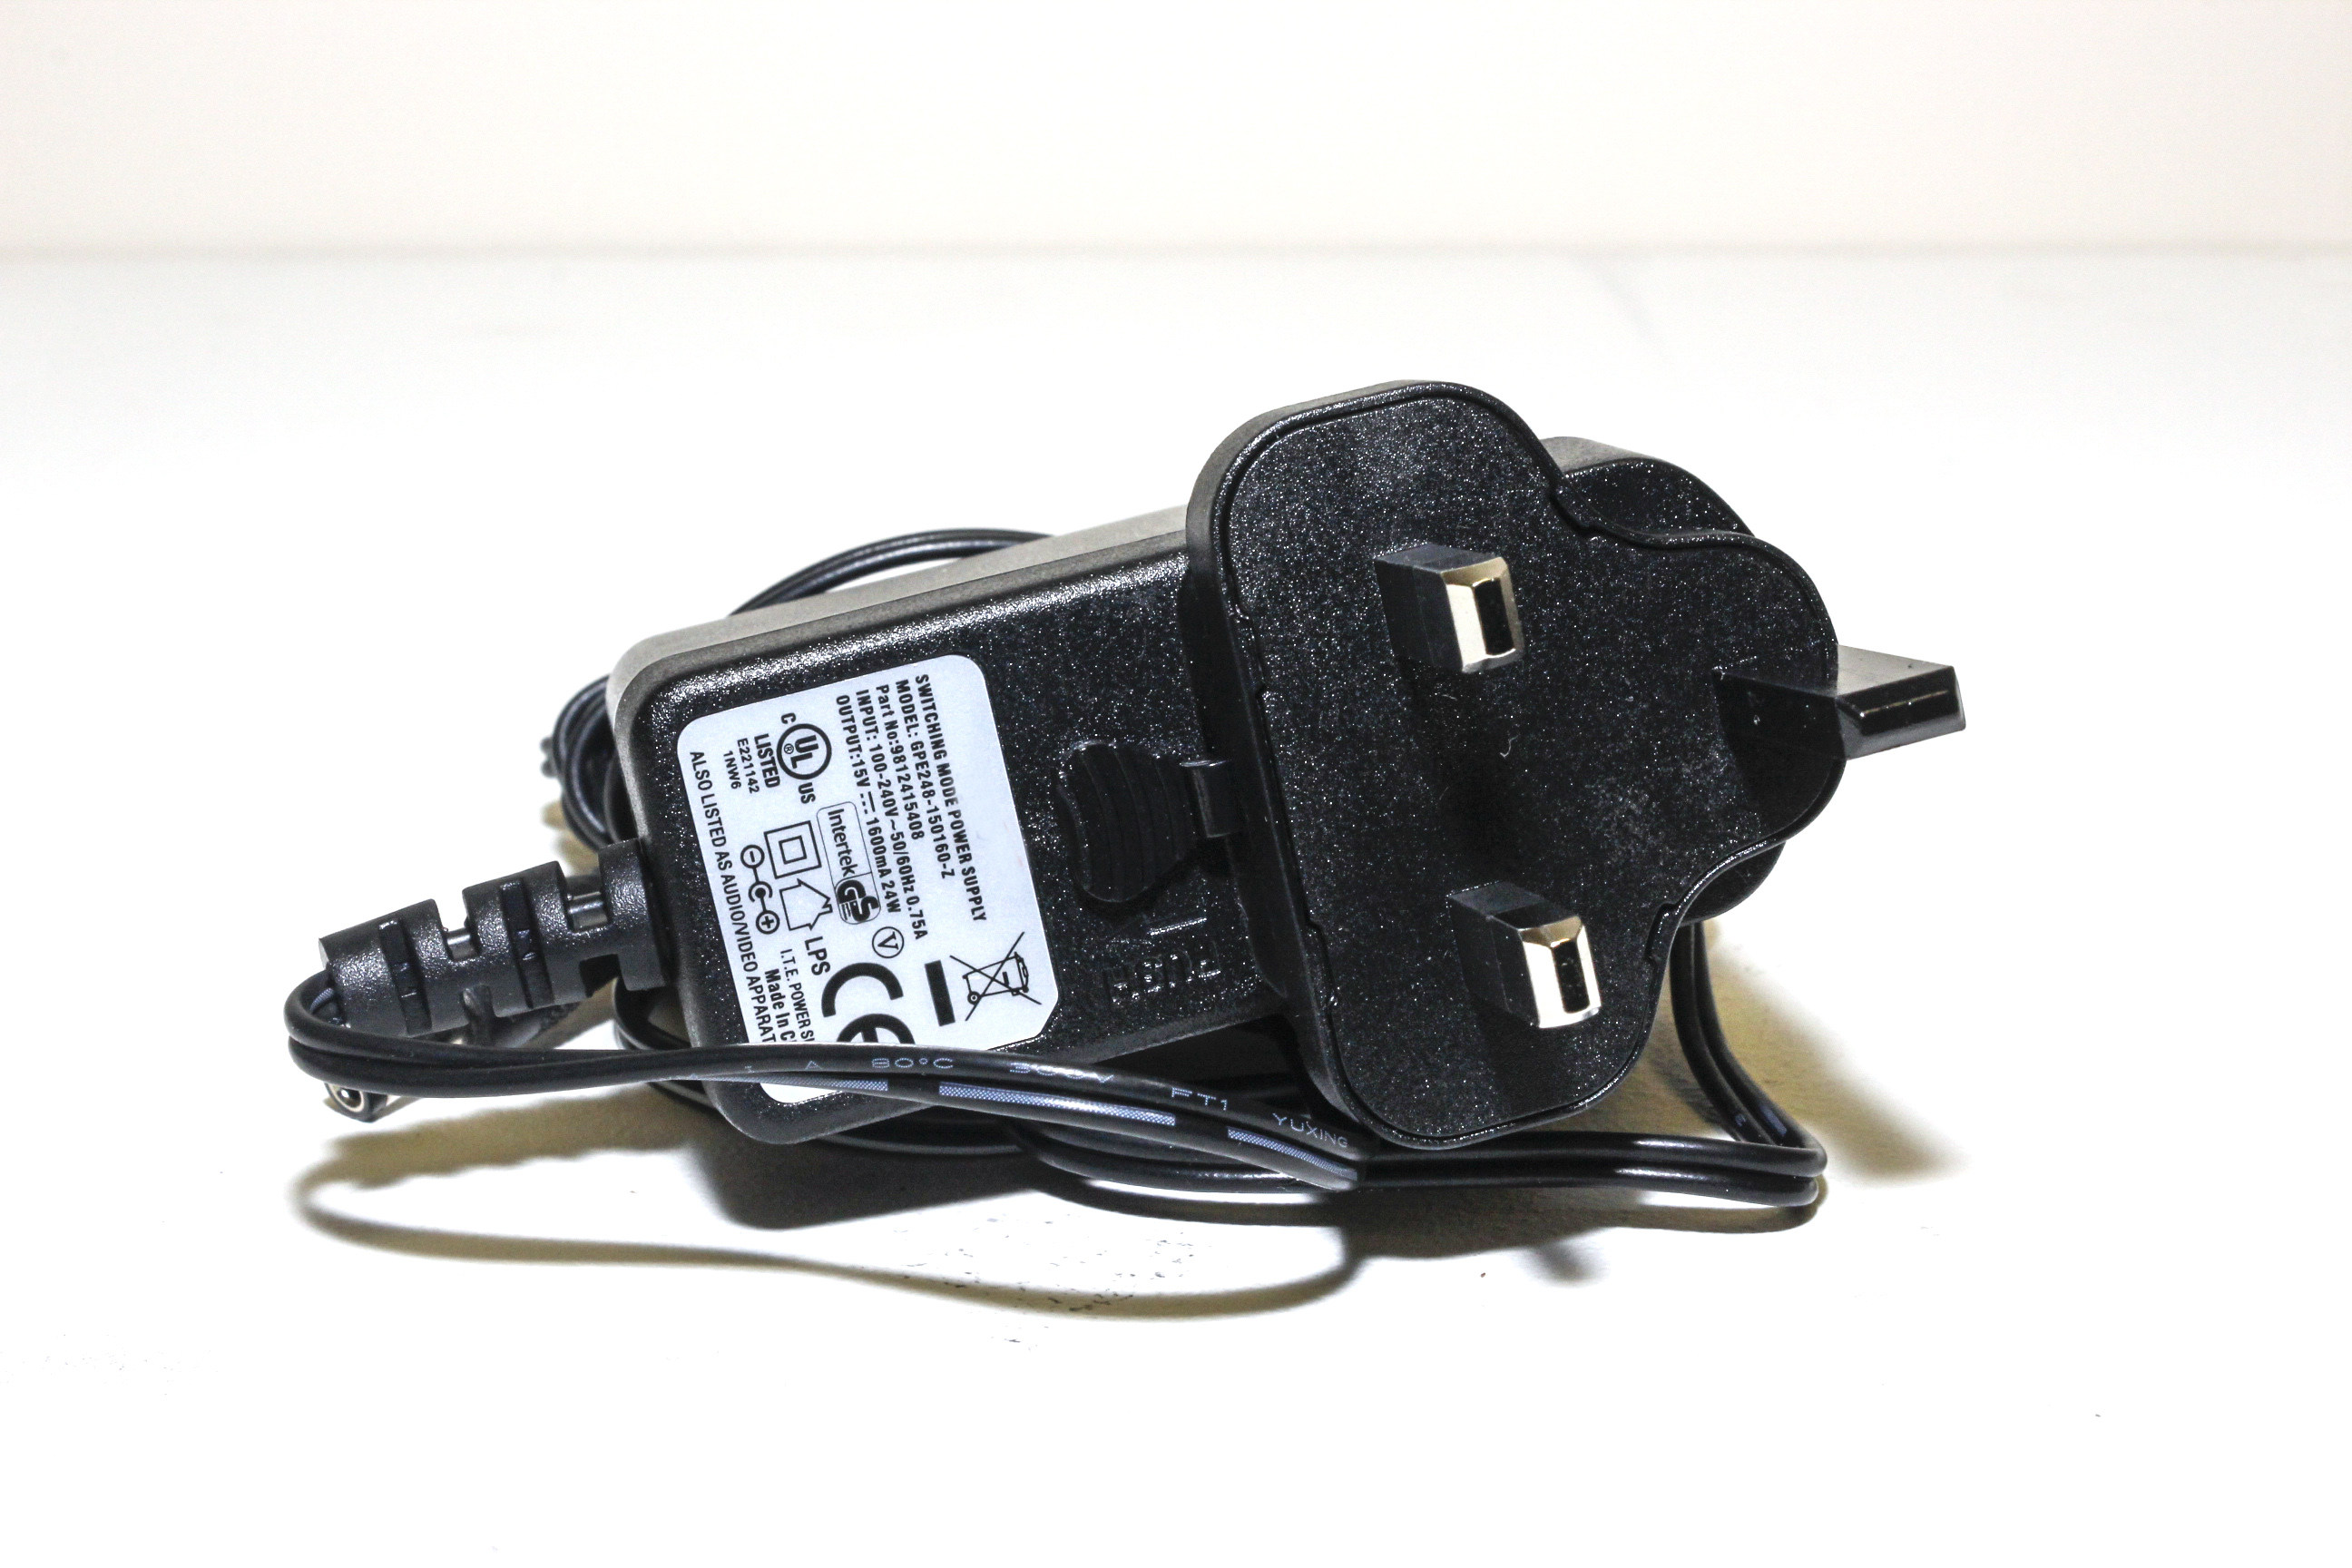 Charger (12 Volt) for GTR/400 & GTR/410